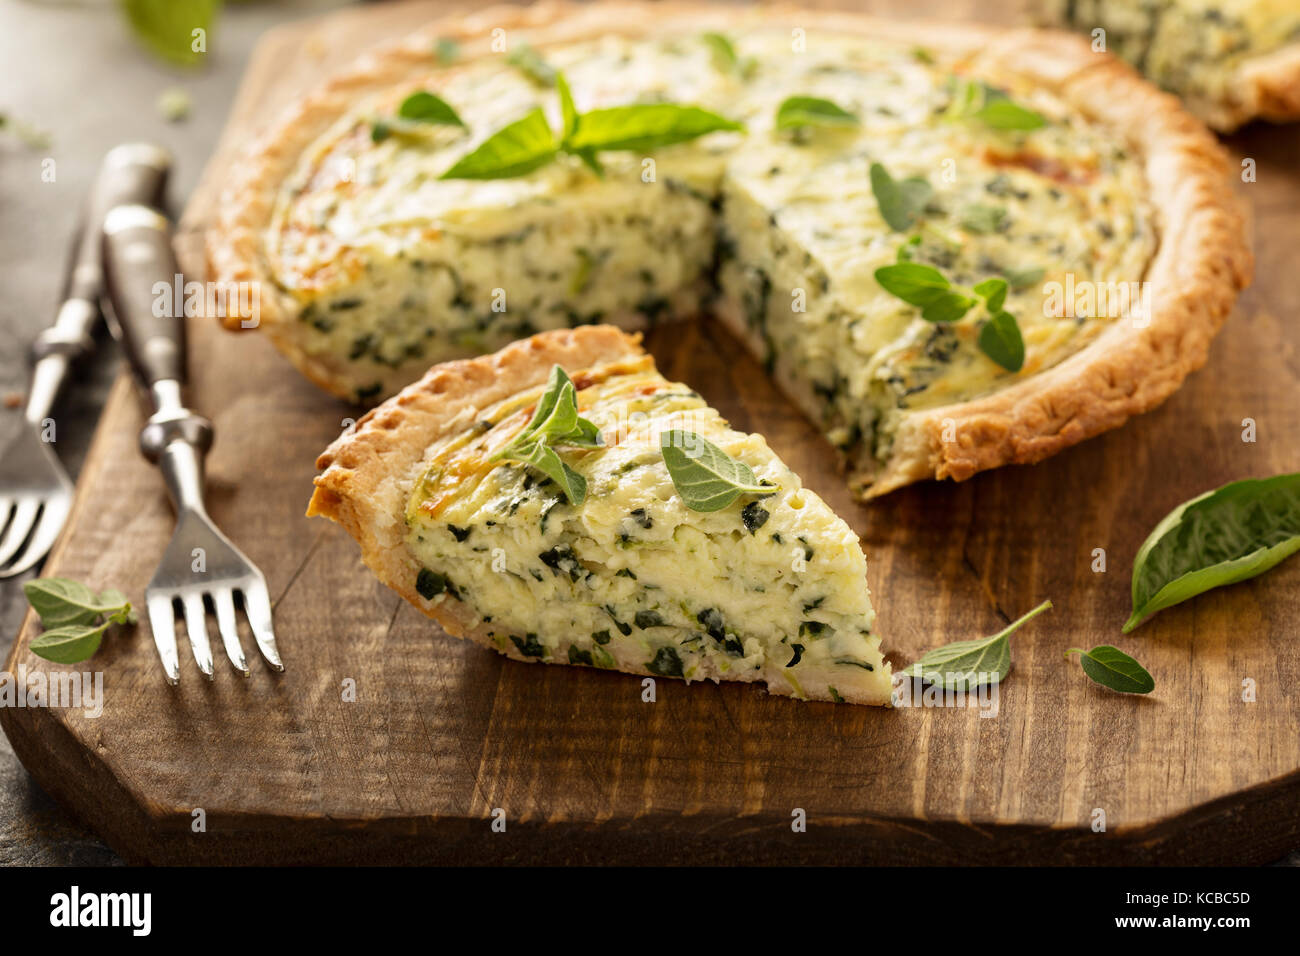 Spinach and herb Florentine quiche - Stock Image